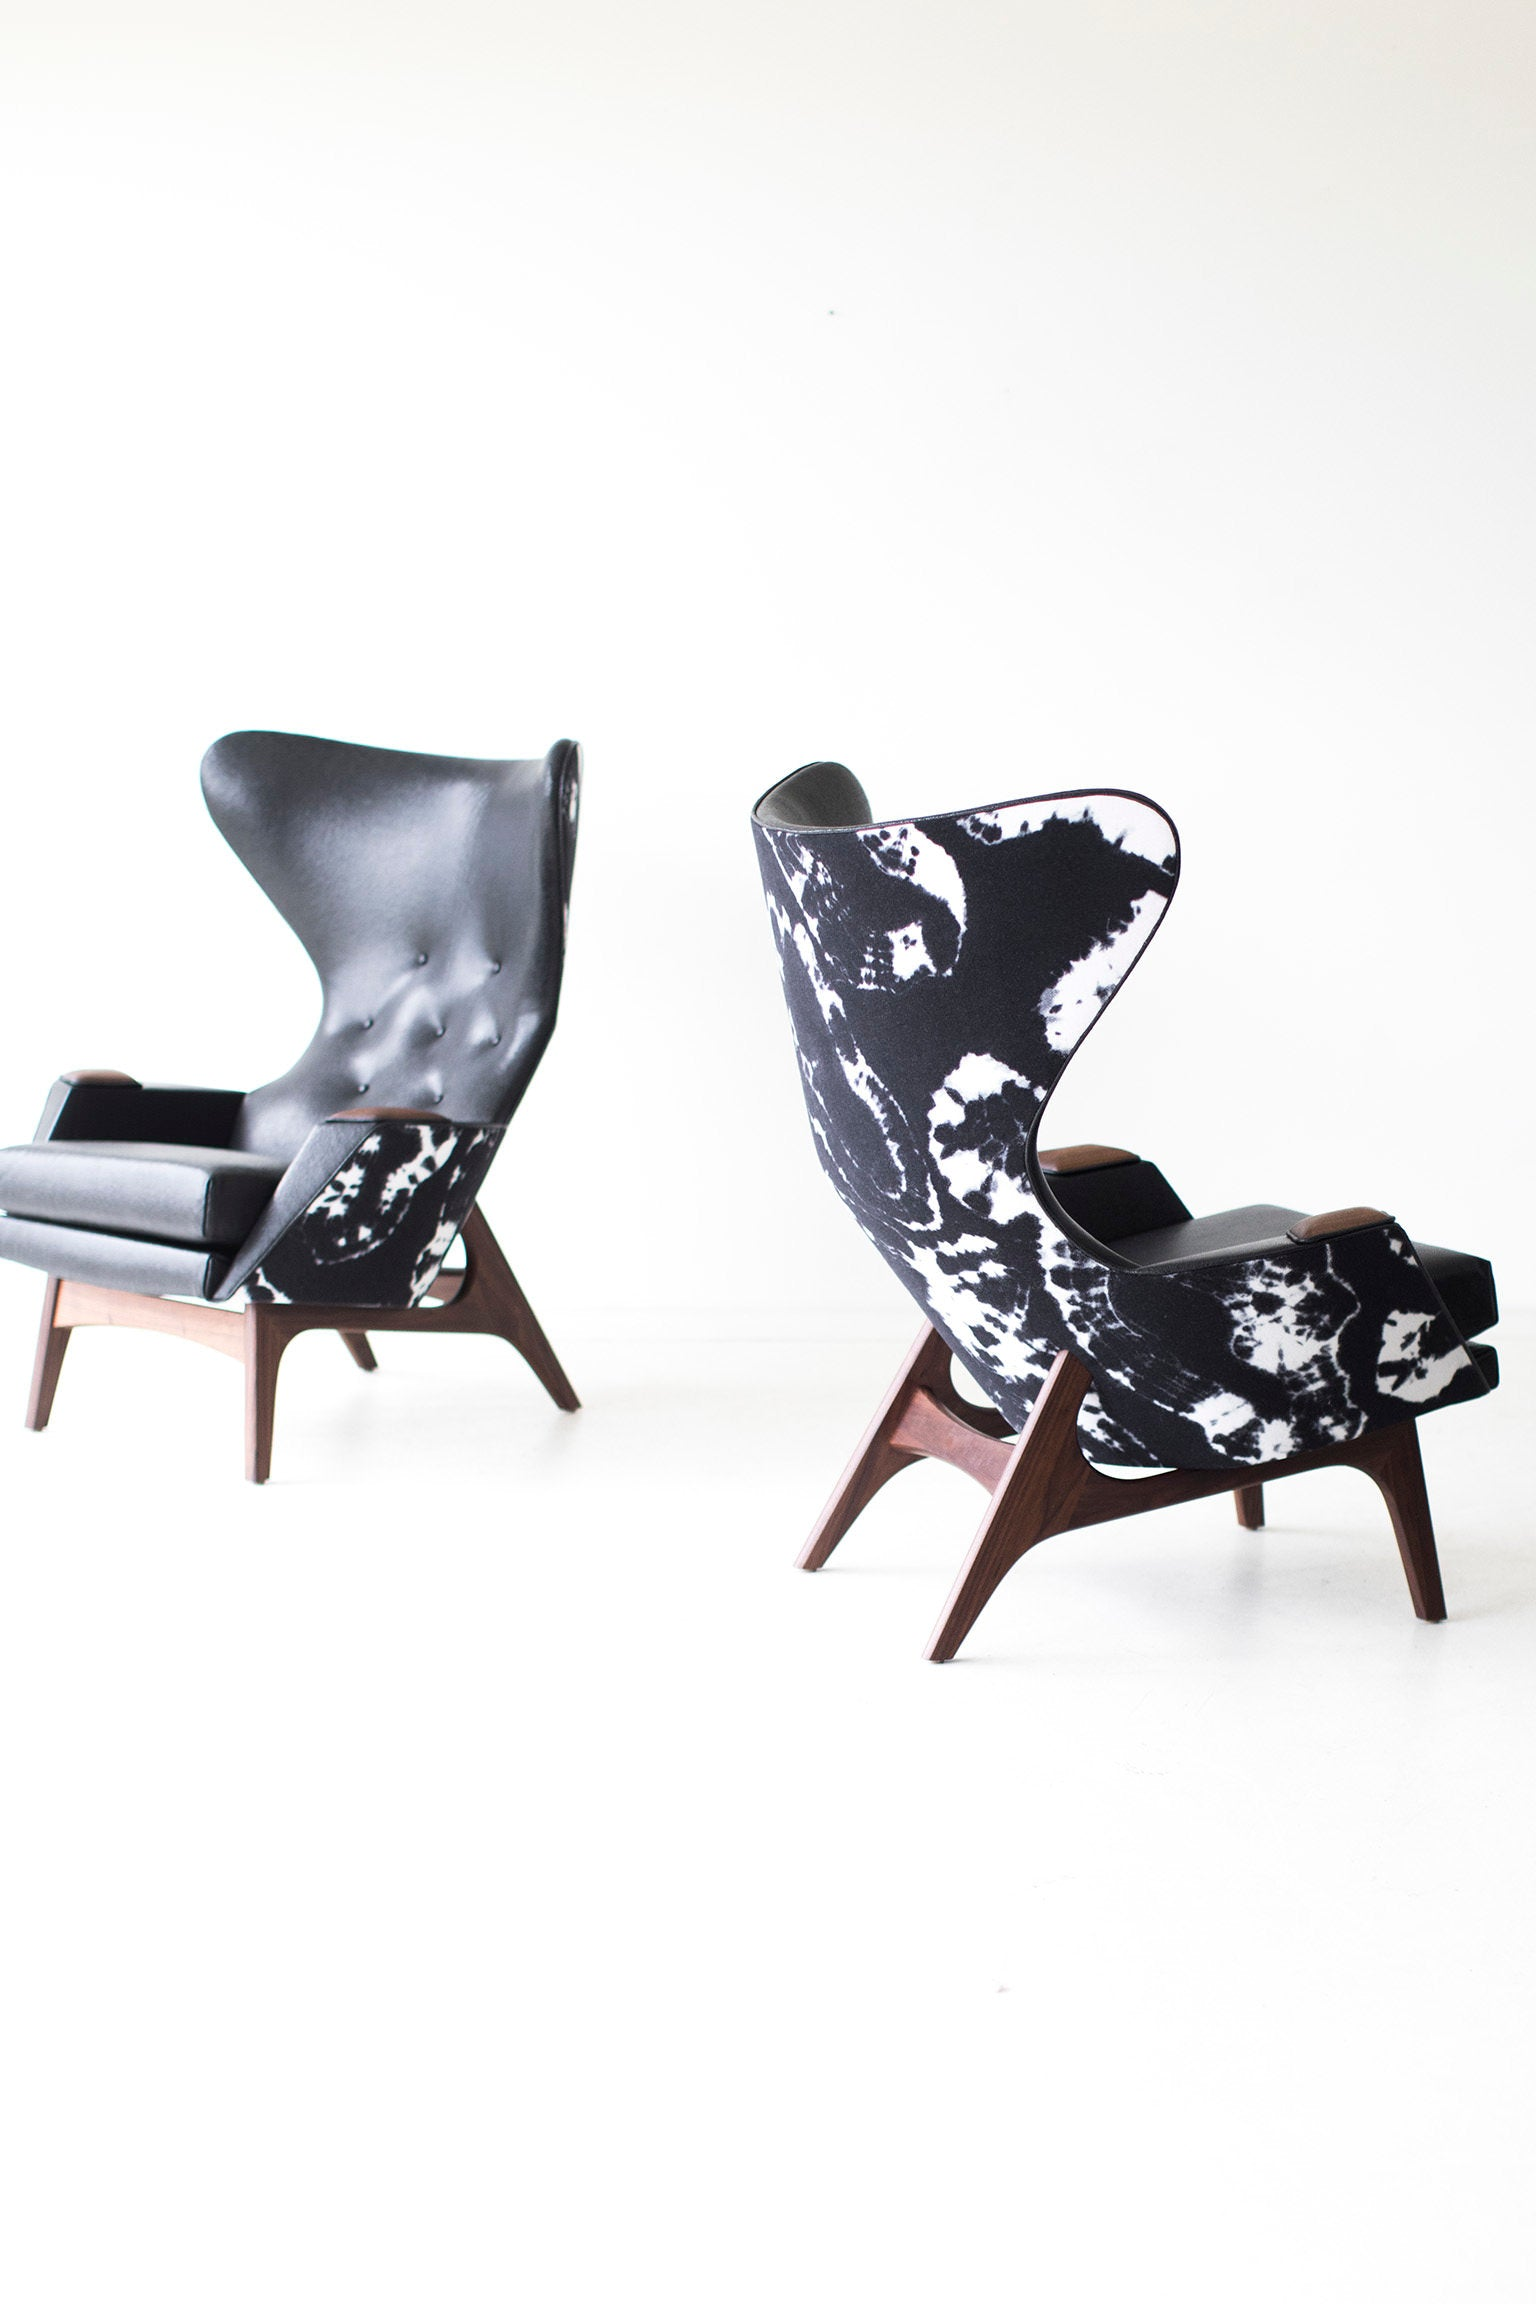 craft-associates-modern-wing-chairs-1407-05